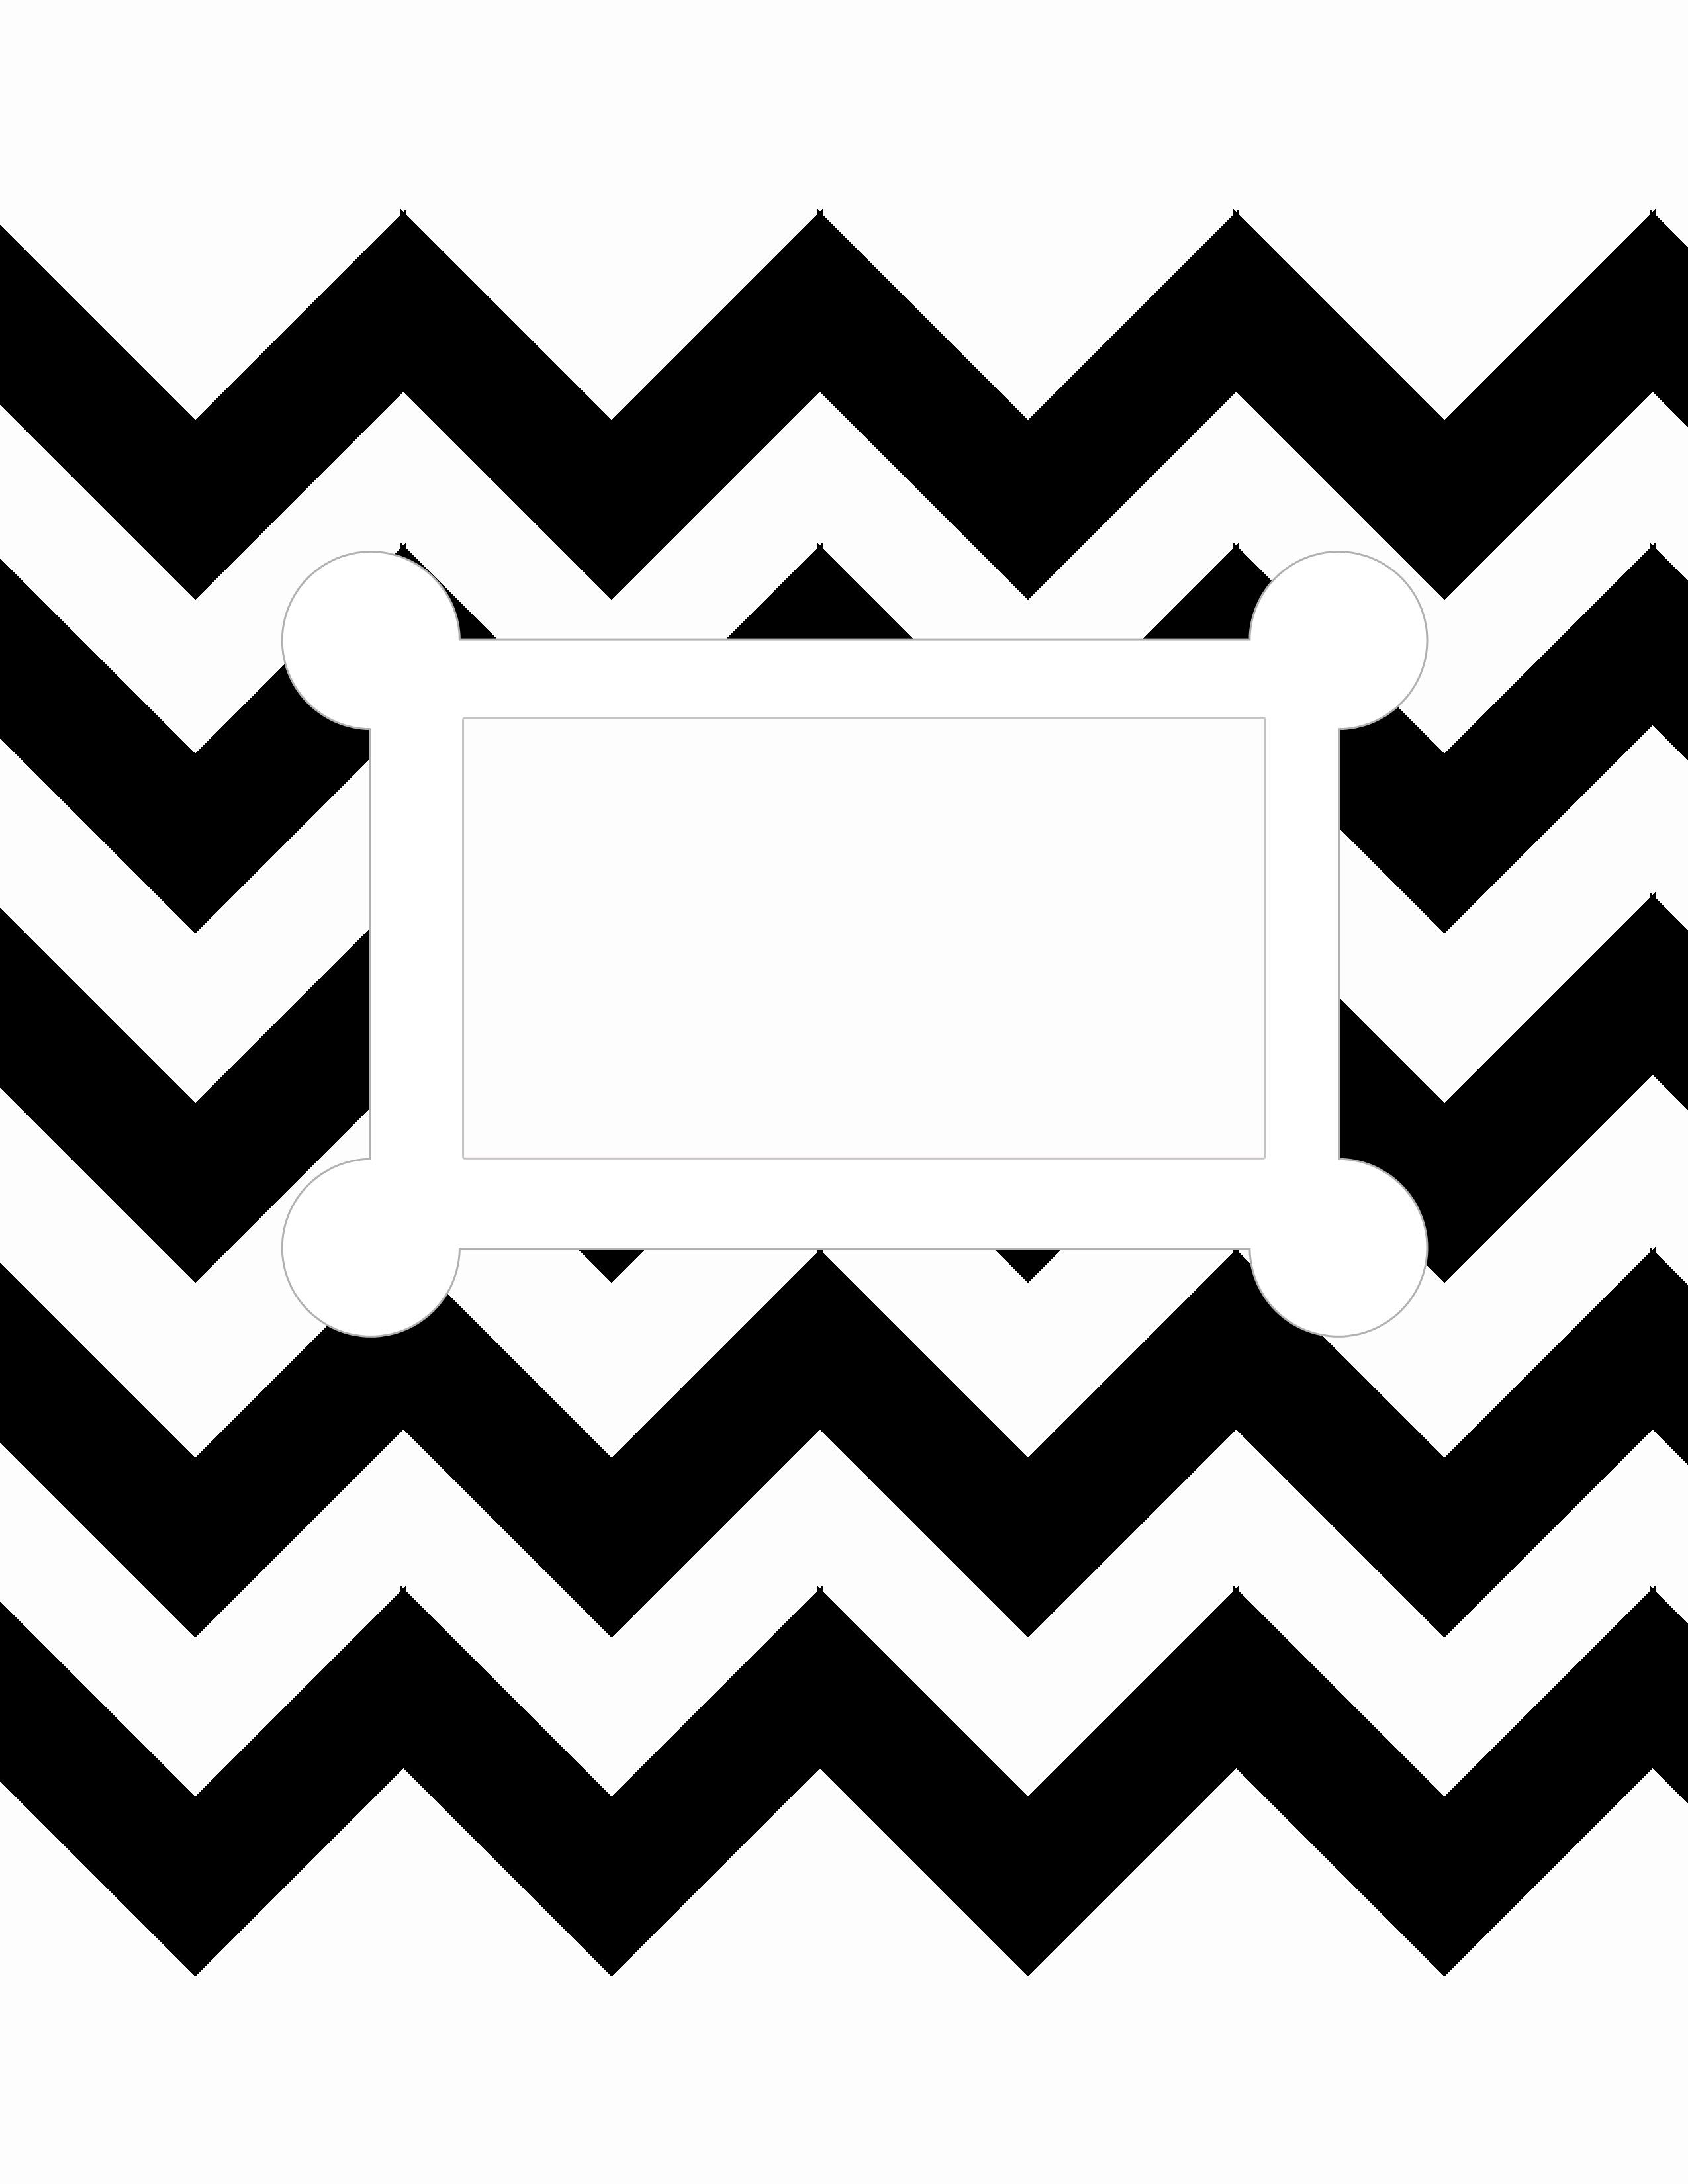 Free Printable. 8.5 X 11, Letter Size, Binder Cover Template. Black - Free Printable Binder Cover Templates